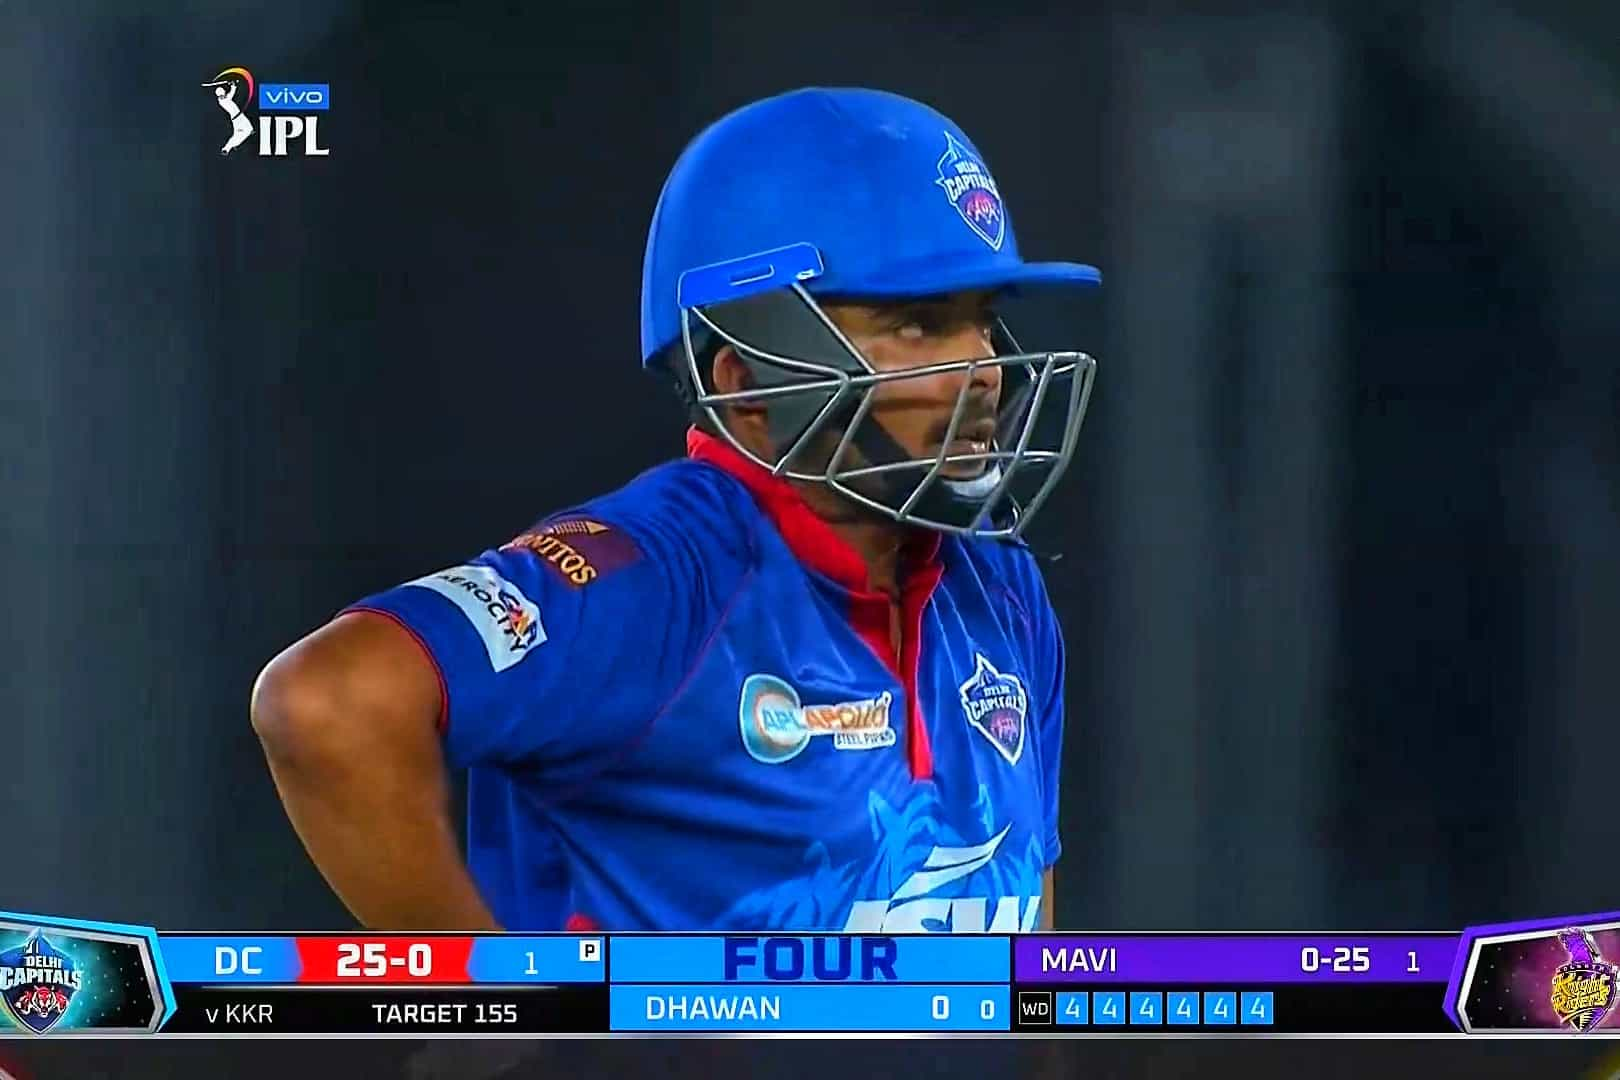 Watch: Prithvi Shaw Smashes 6 Fours In An Over In DC vs KKR - Match 25